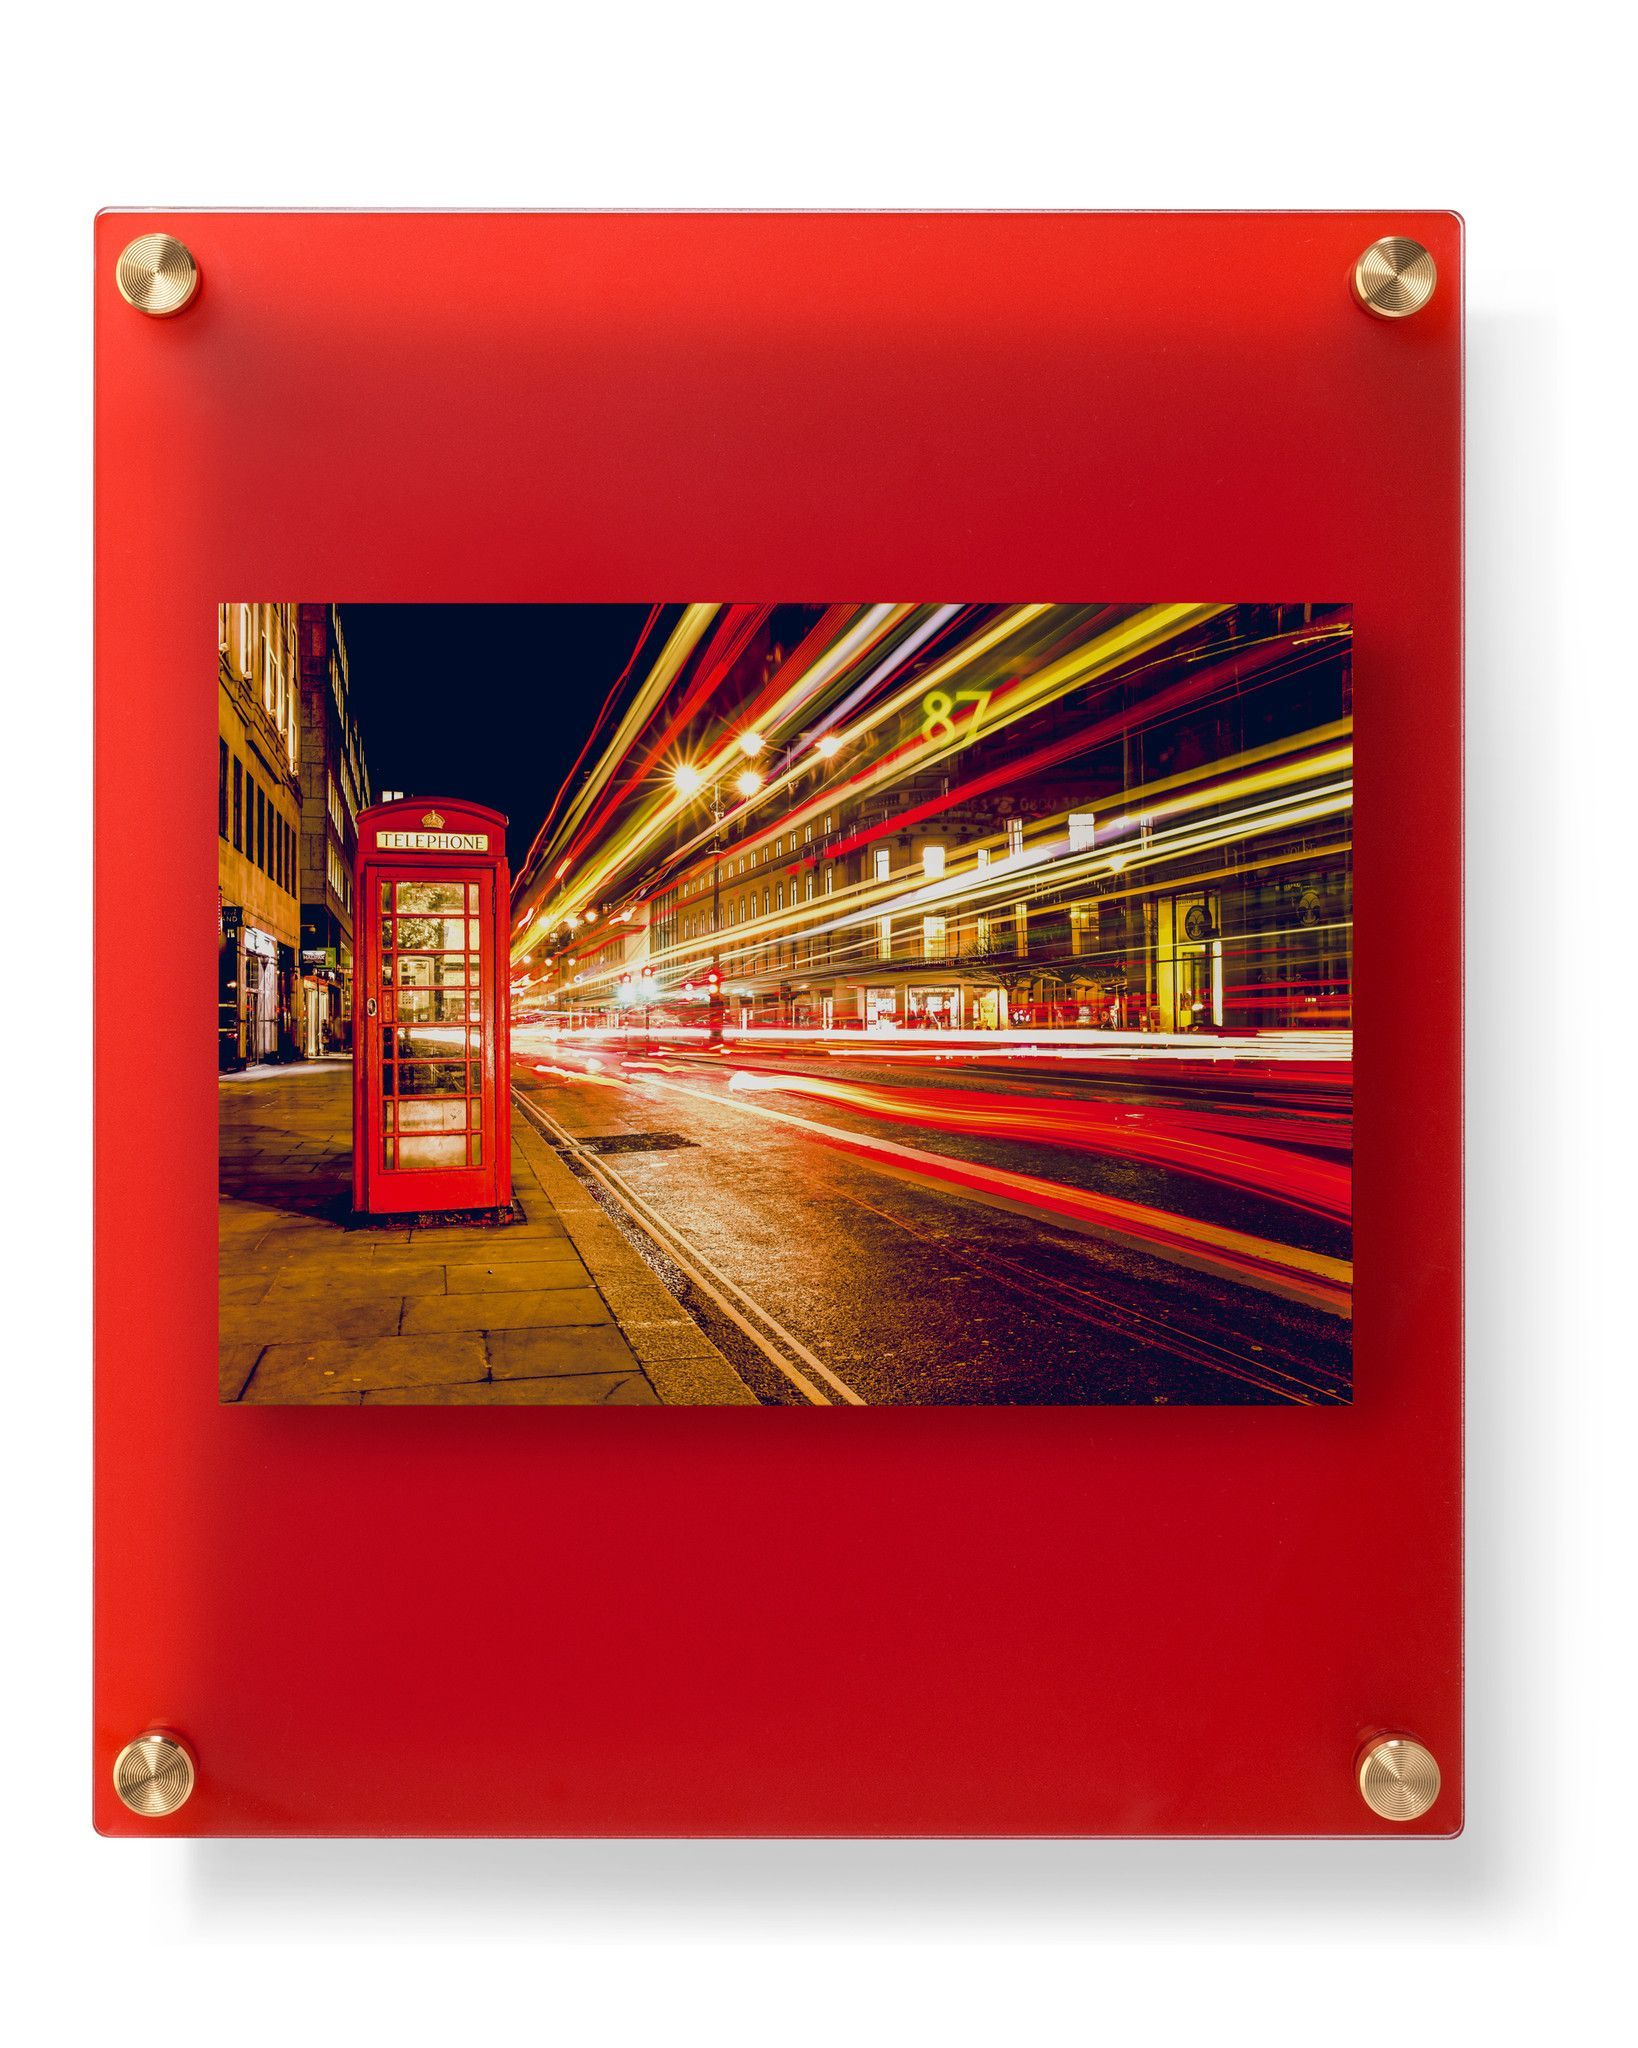 12x10 Ruby Frost Double Panel Floating Frame For 5x7 Photos